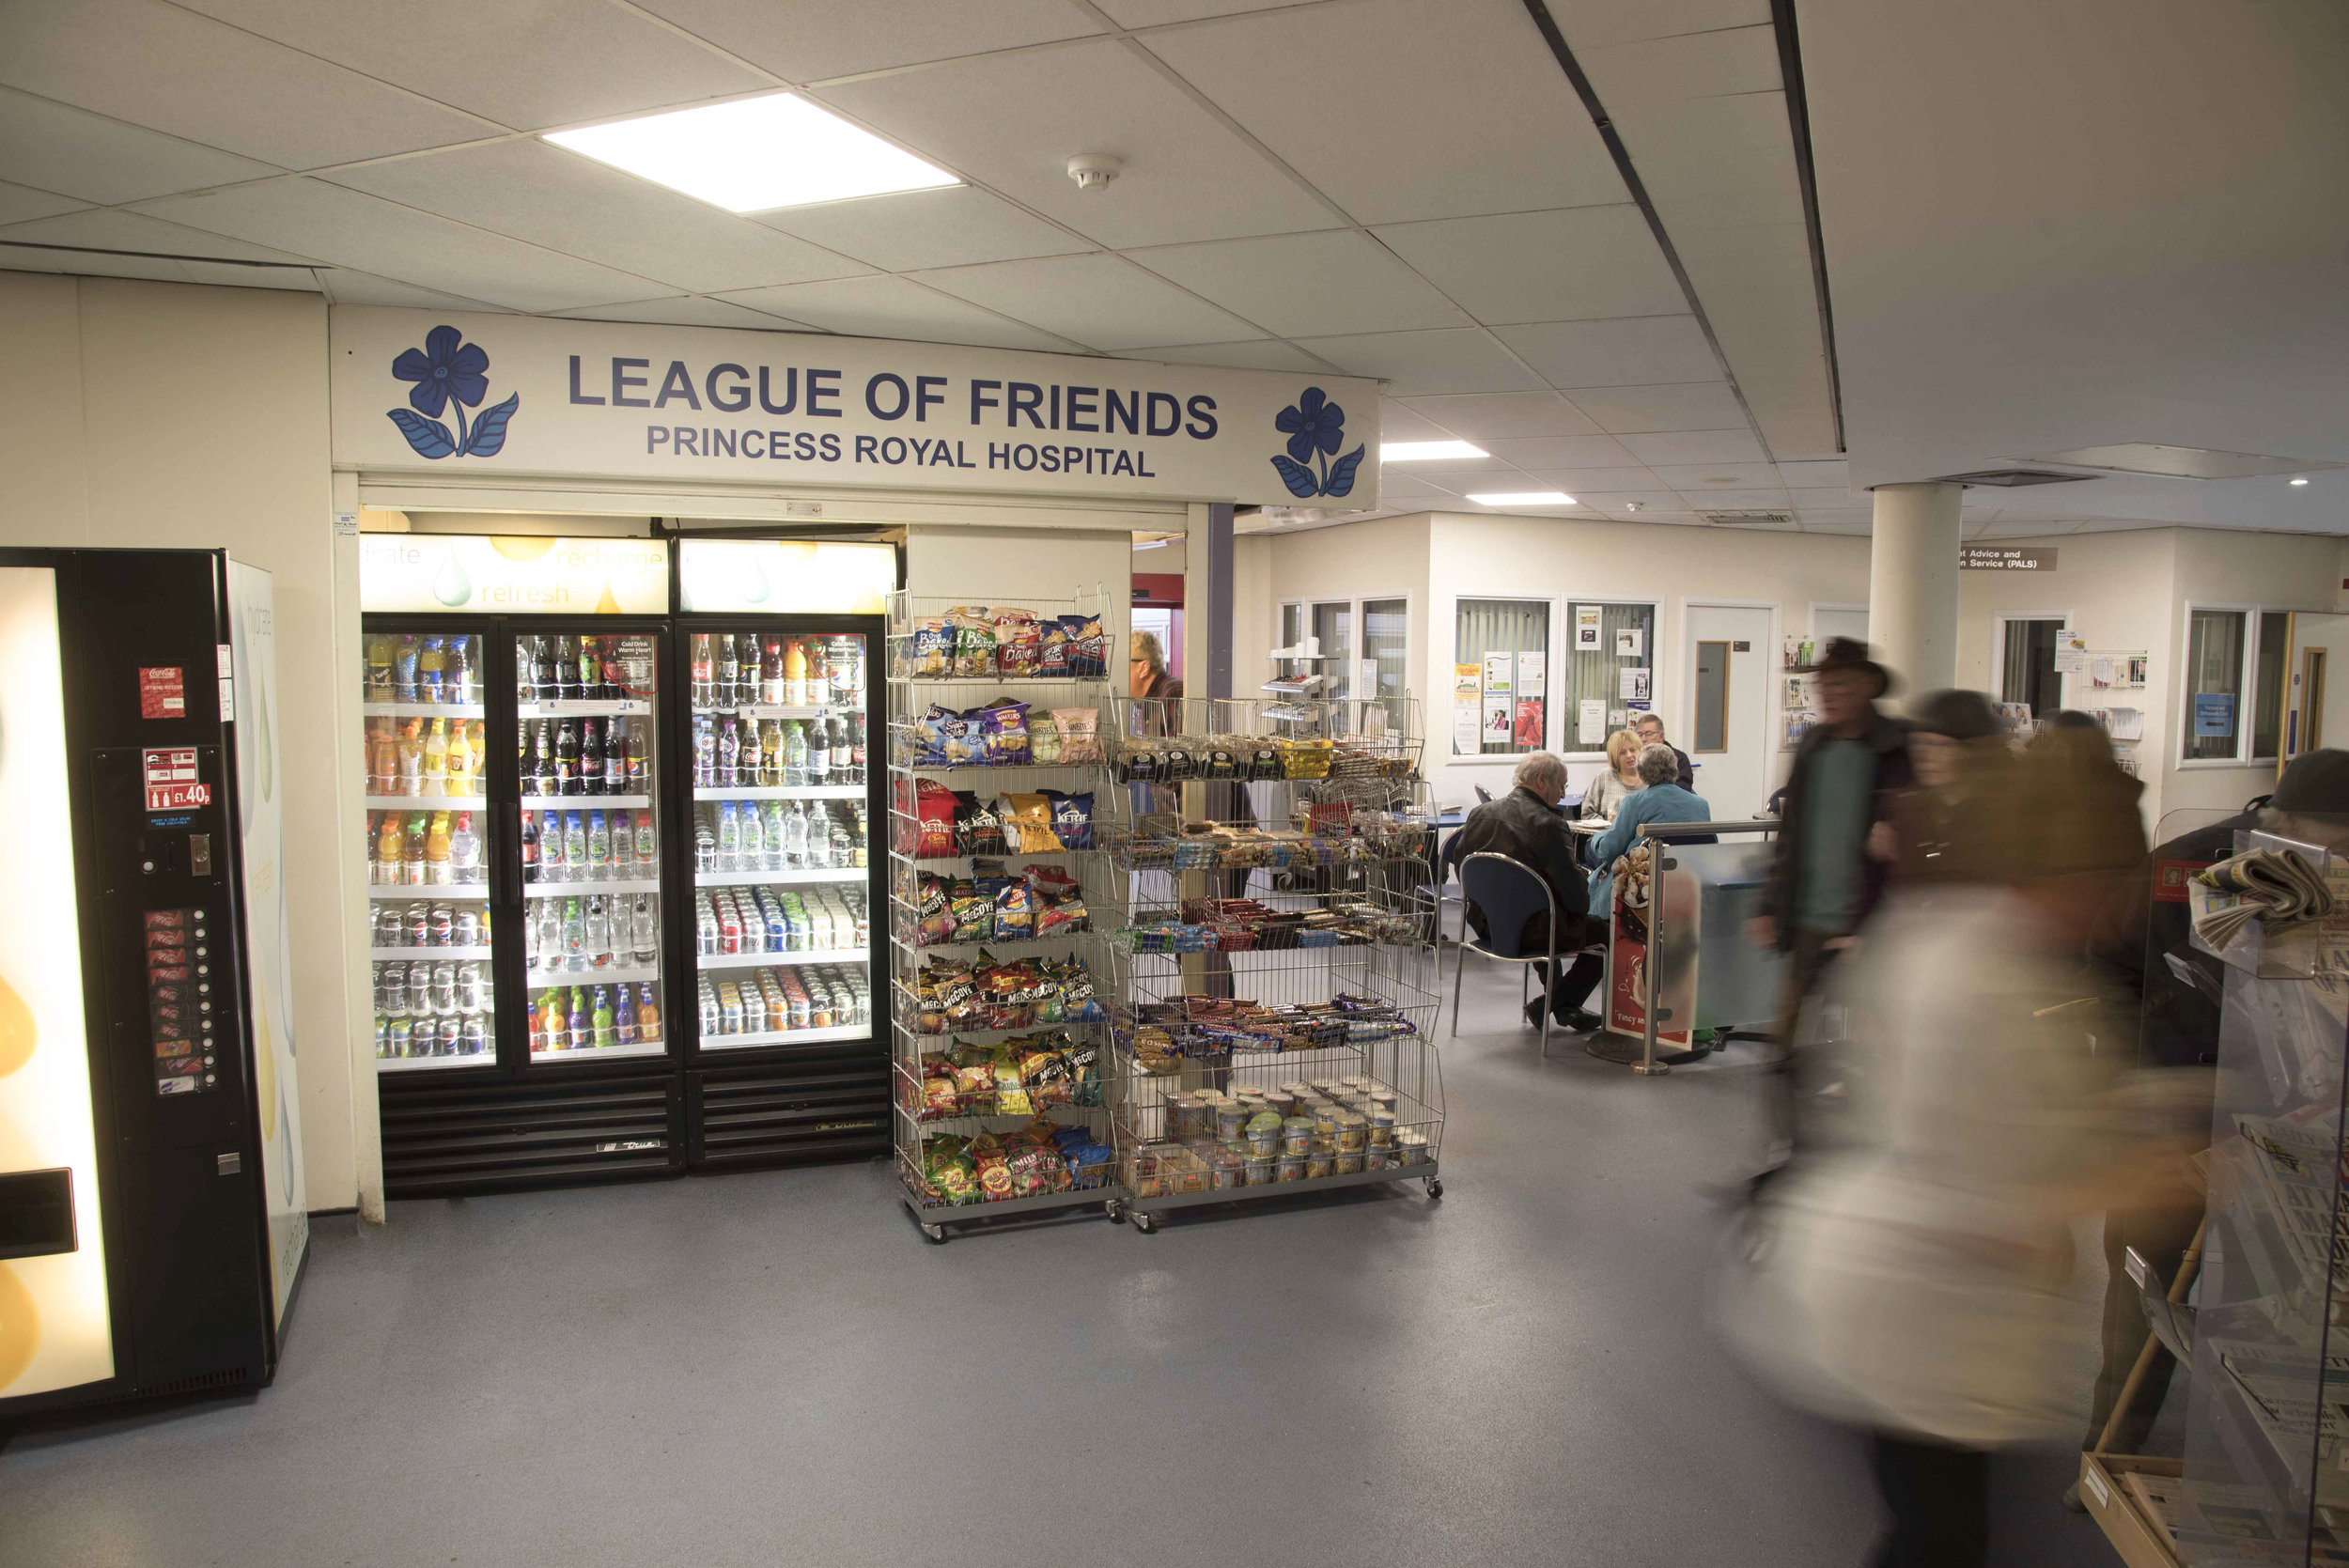 League of Friends Cafe at The Princes Royal Hosptial.jpg